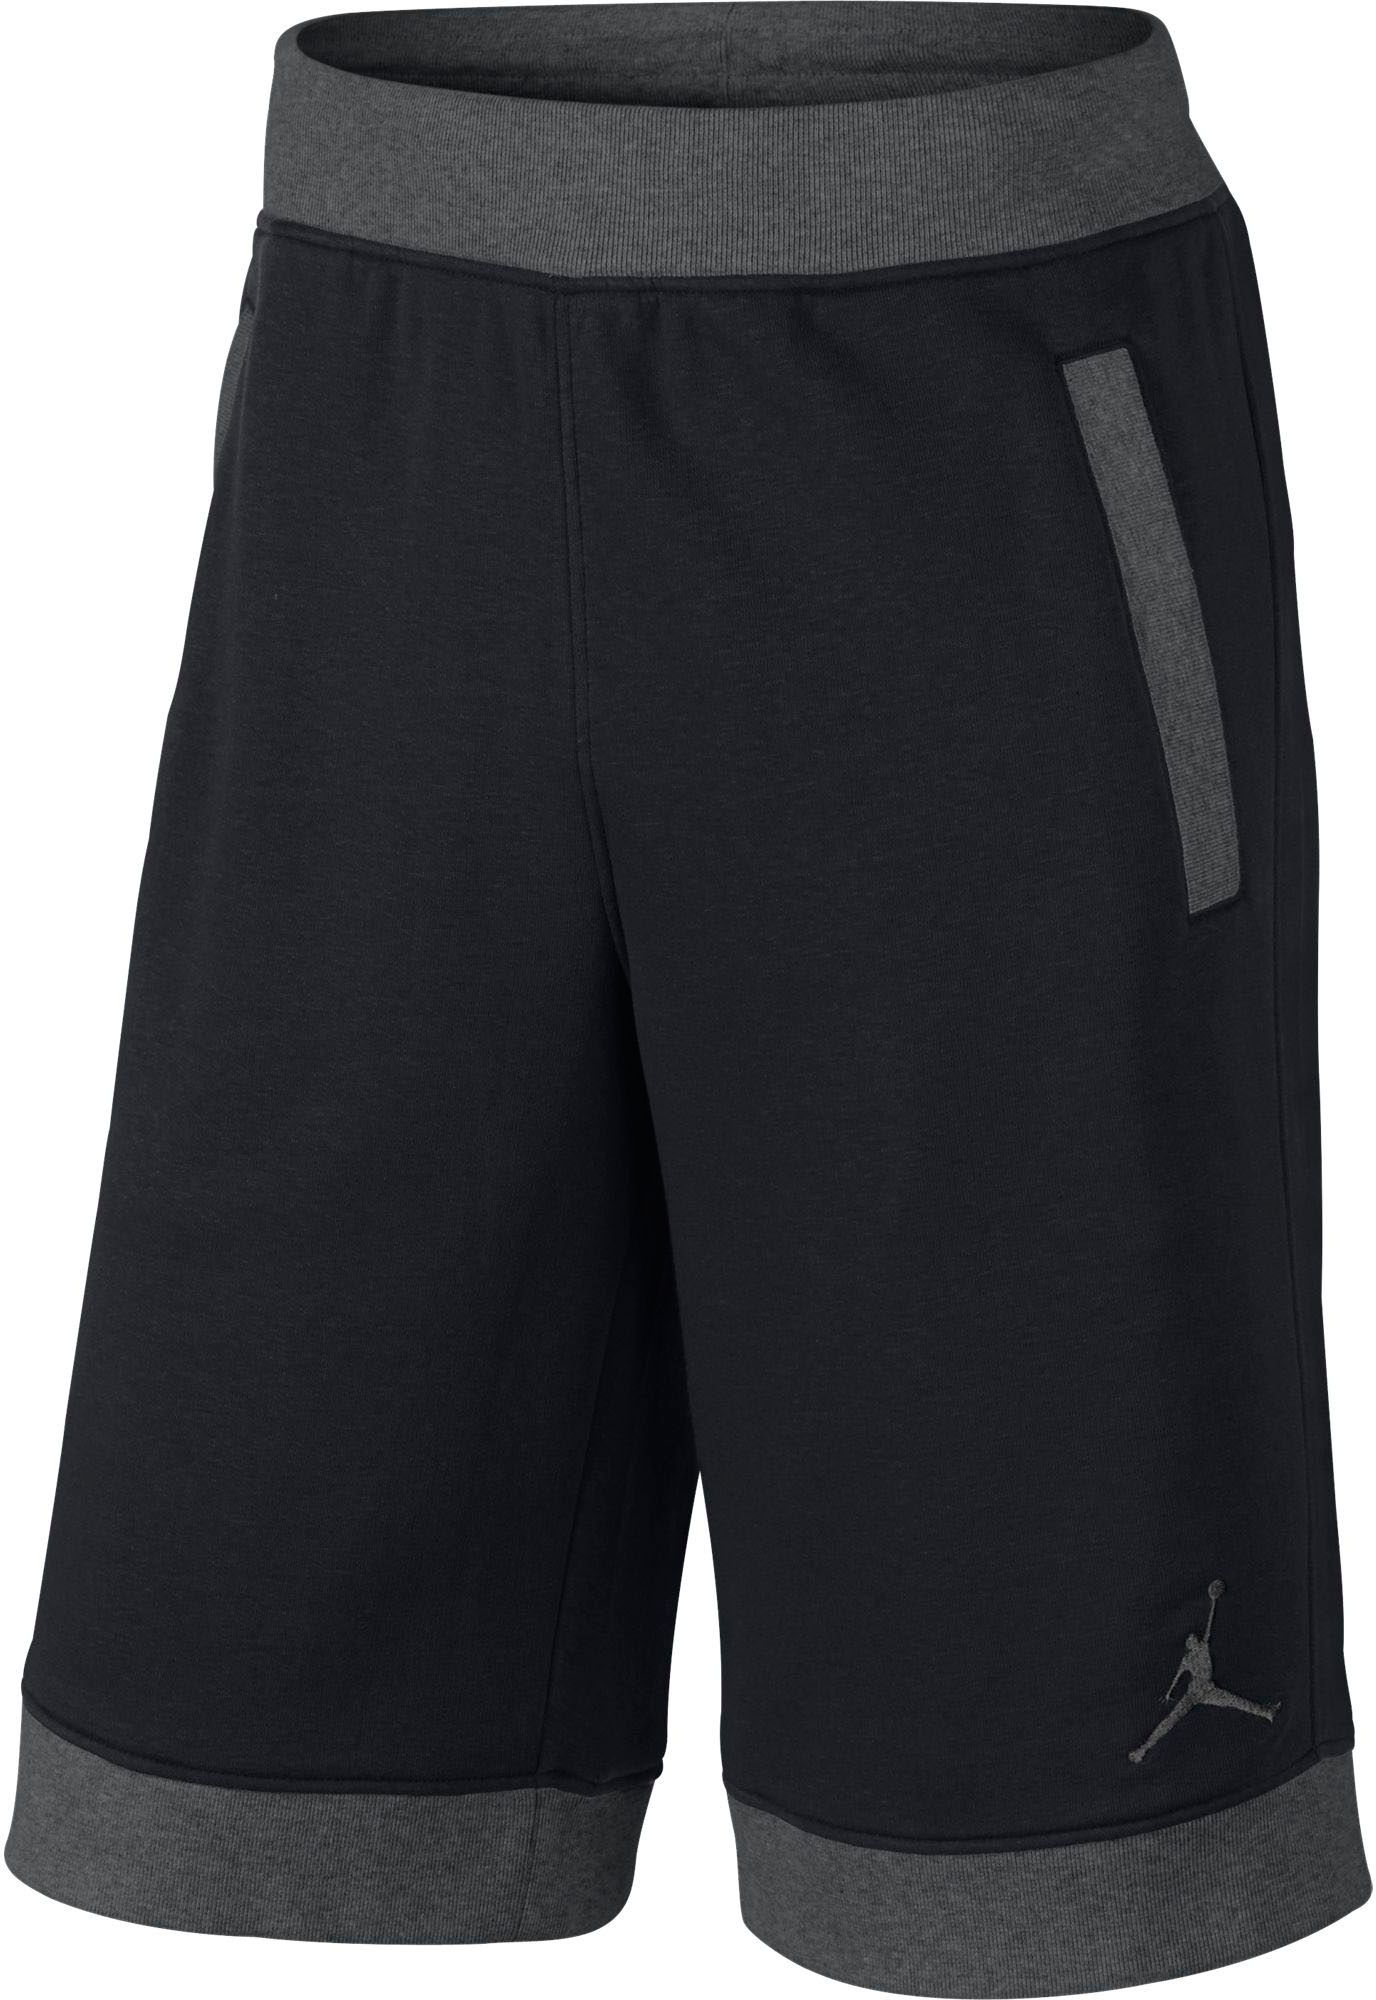 Jordan Men's Fleece Shorts| DICK'S Sporting Goods